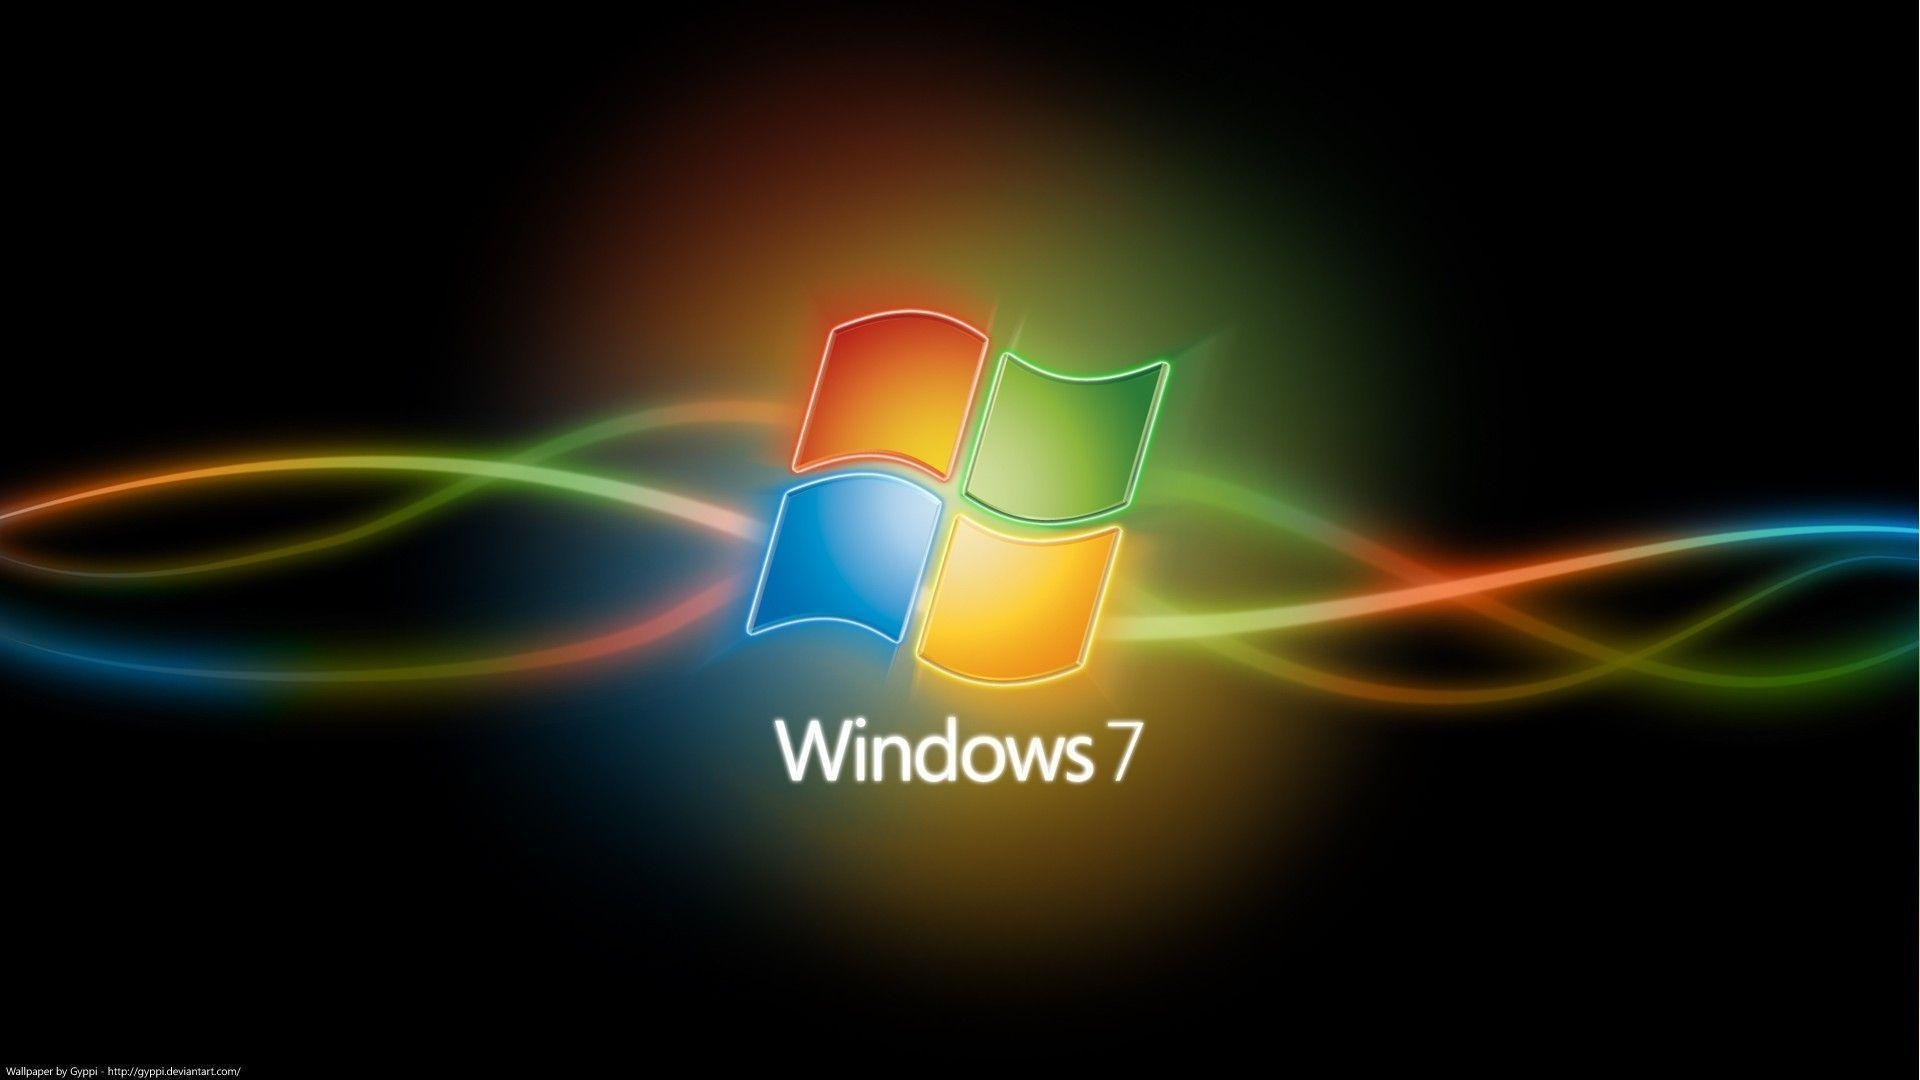 gif wallpapers windows 7 - wallpaper cave